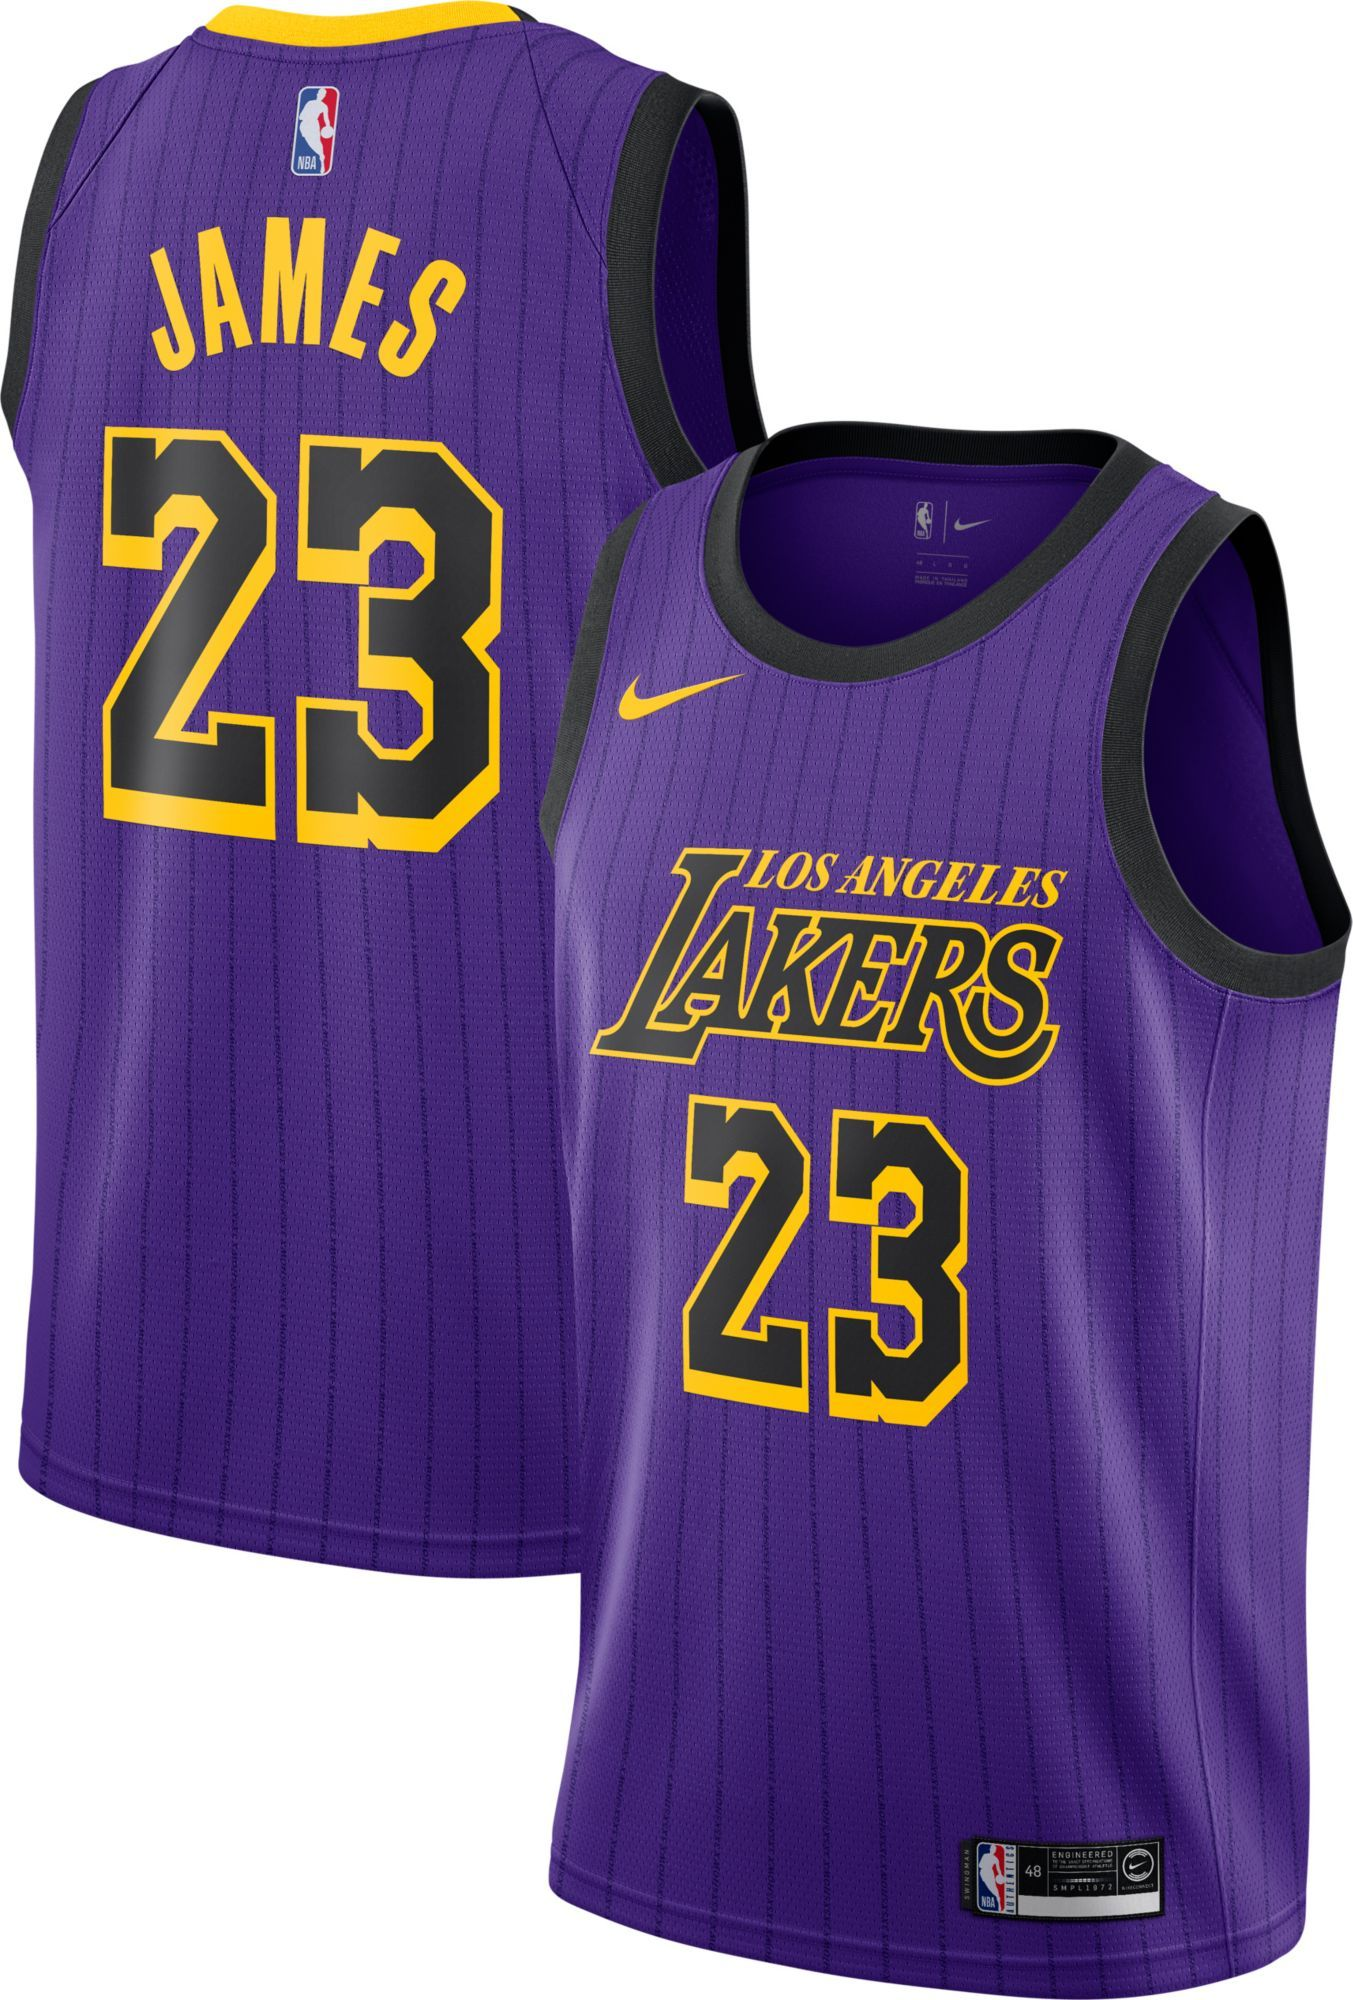 aadef360ac2 Nike Men's Los Angeles Lakers LeBron James Dri-FIT City Edition Swingman  Jersey, Size: XXL, Purple